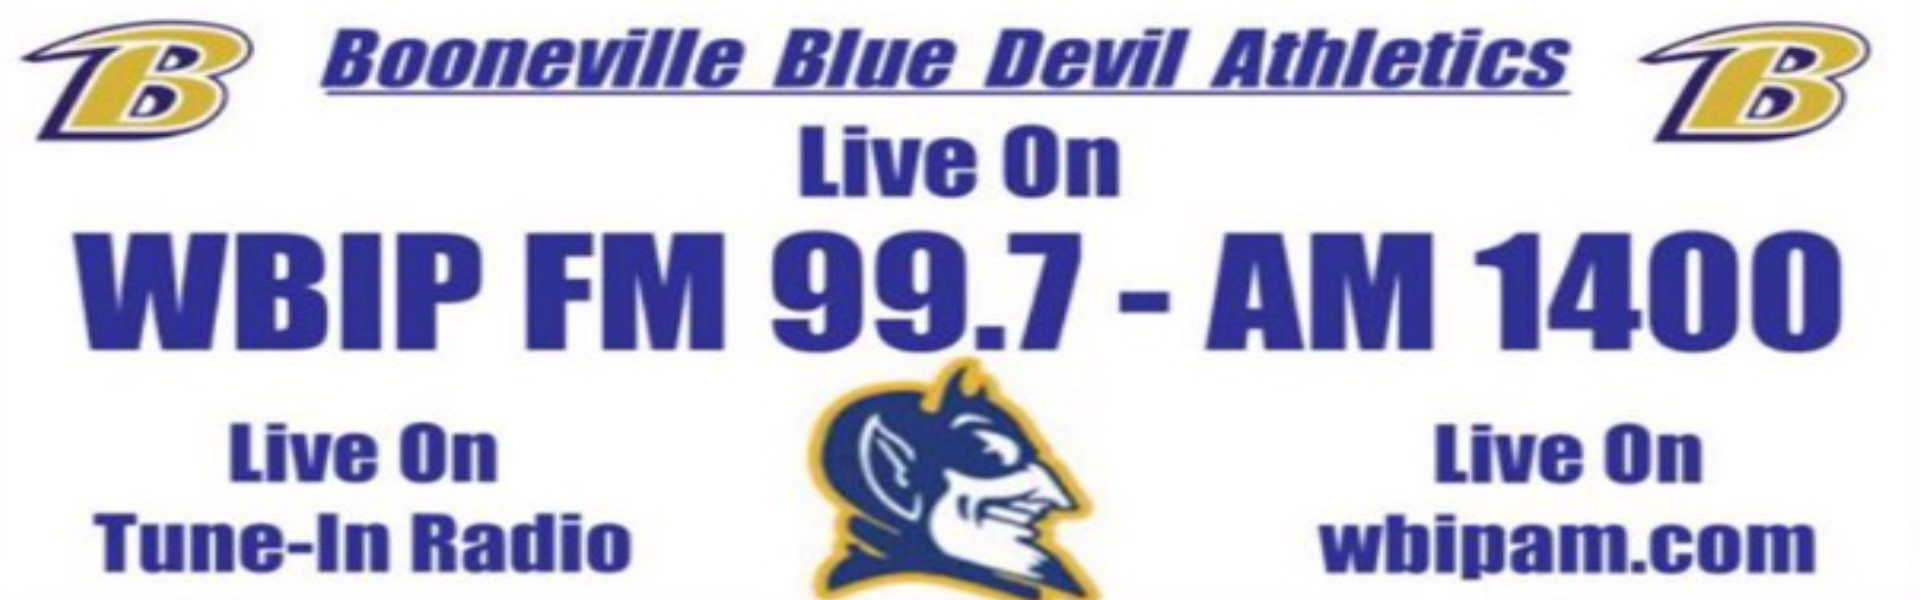 Tune in to WBIP FM 99.7 - AM 1400 for Booneville Athletics live